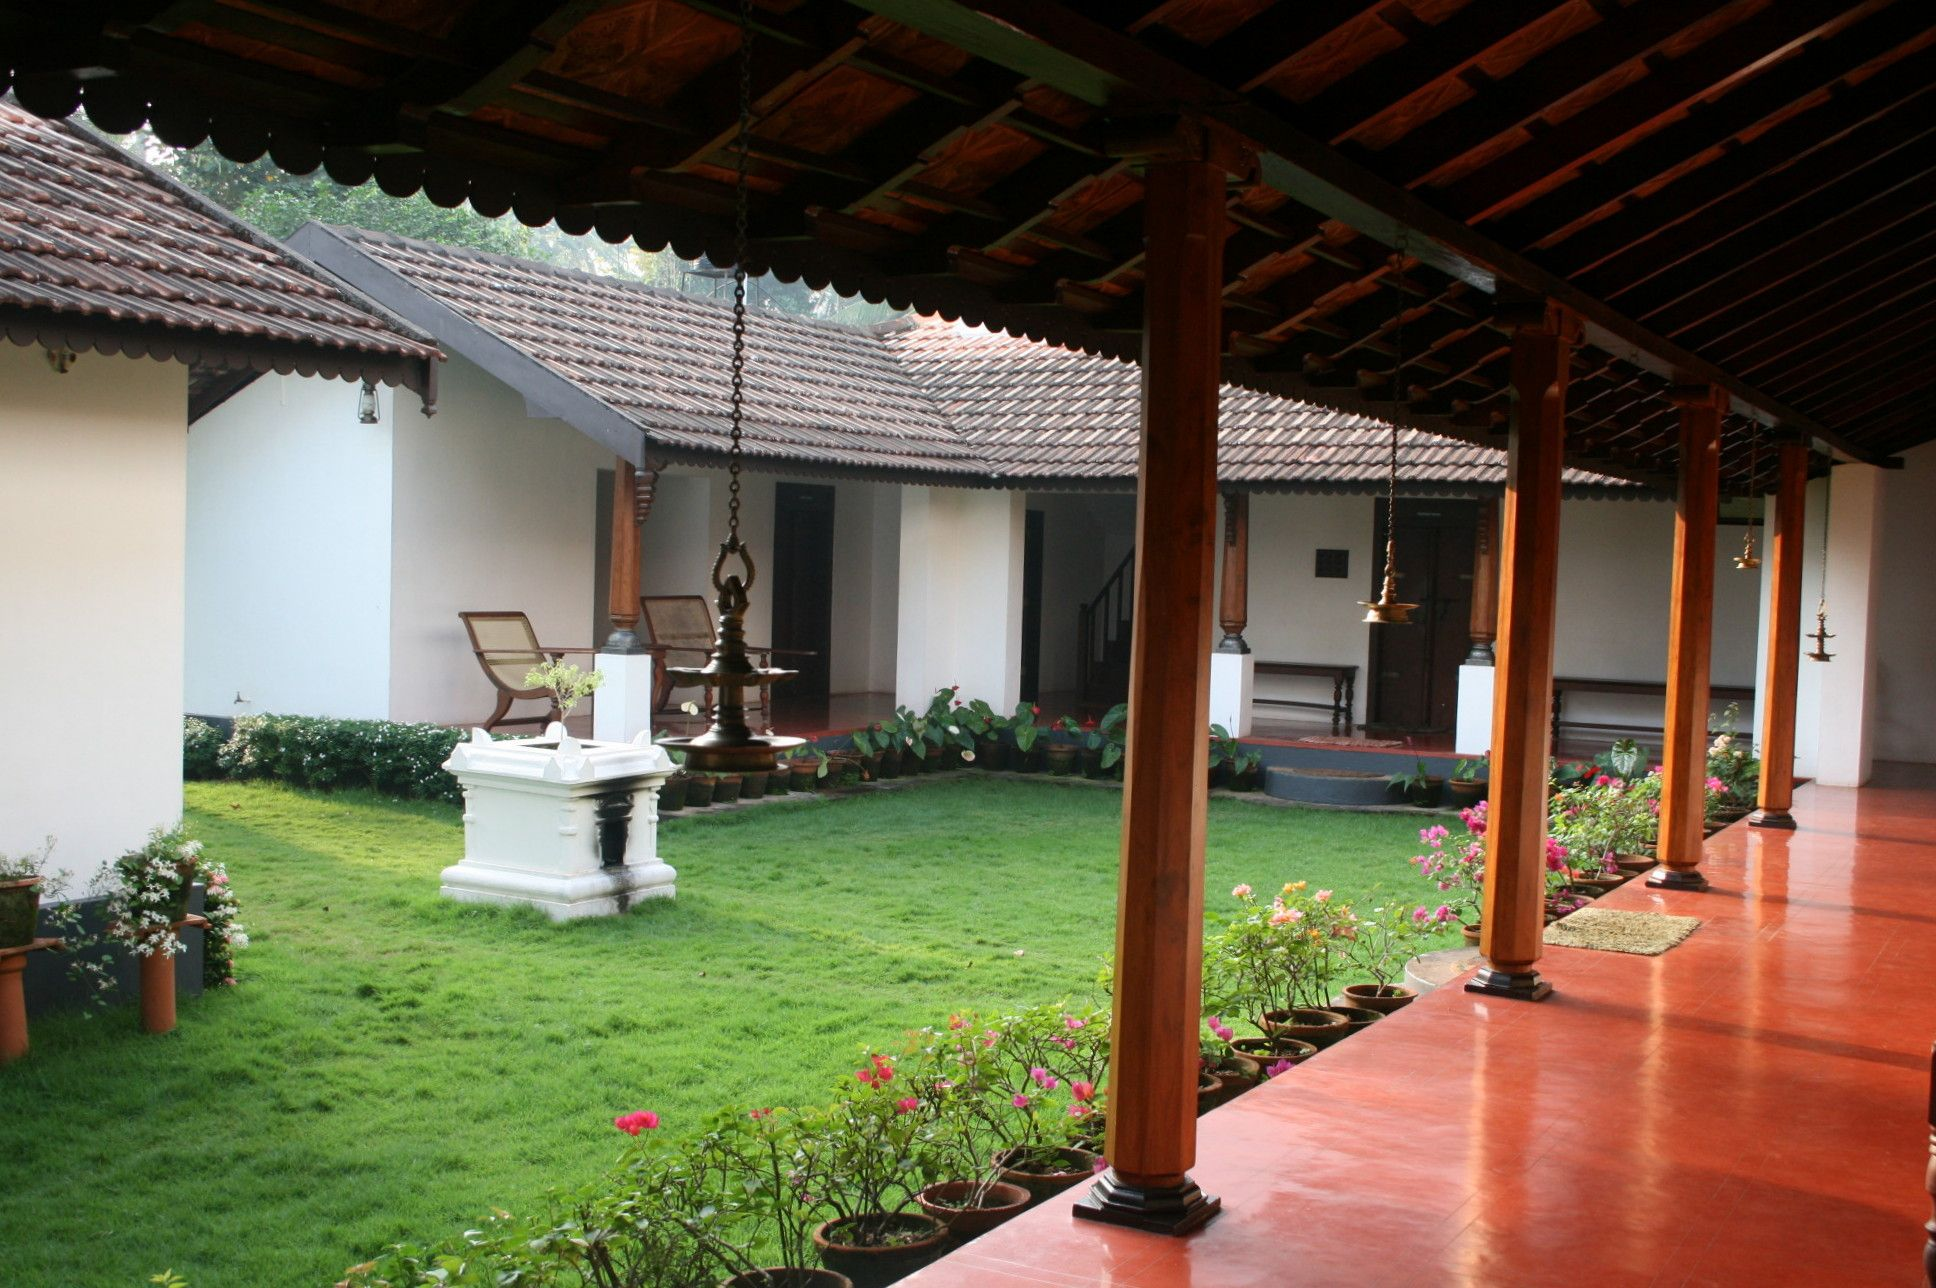 Heritage homestead harivihar traditional house kerala for Kerala house interior arch design